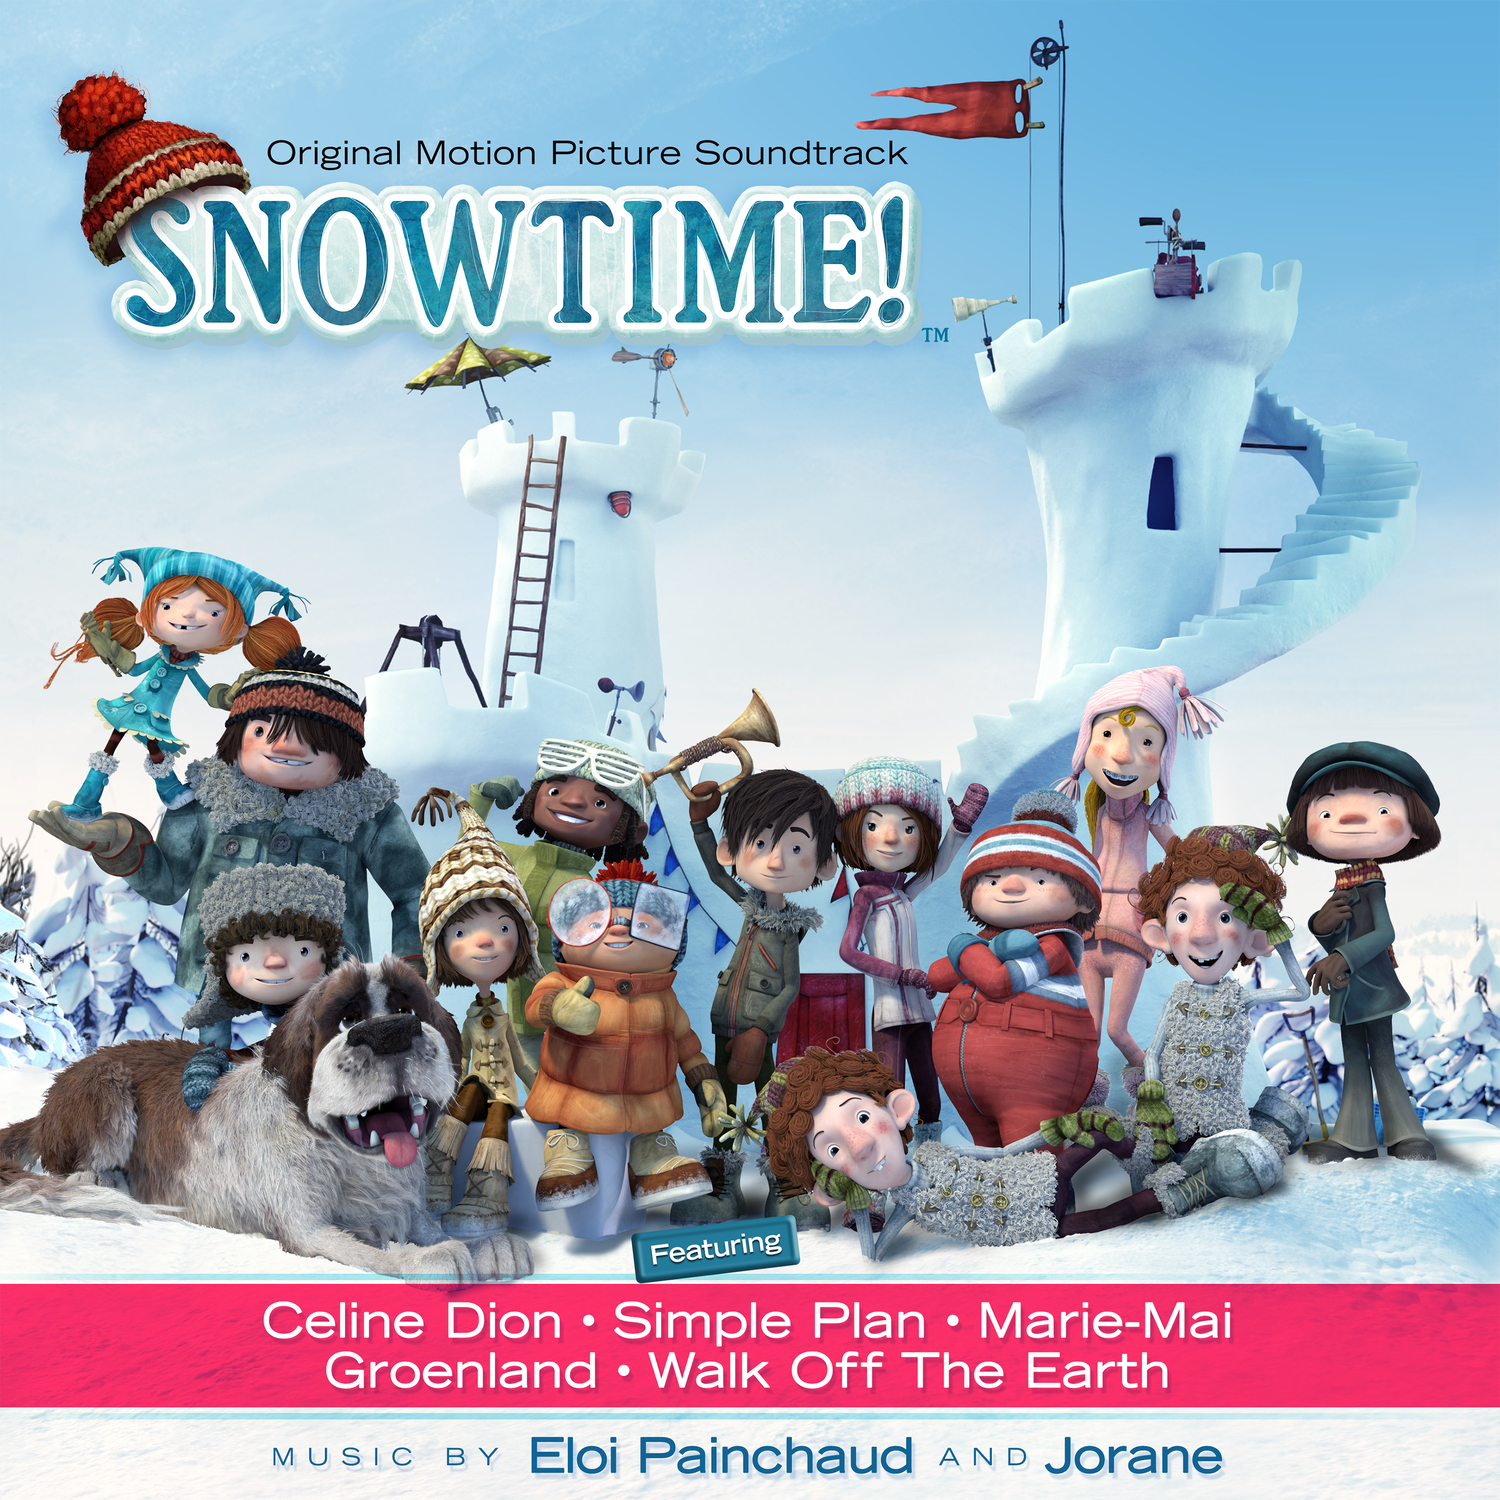 SNOWTIME! (Original Motion Picture Soundtrack)